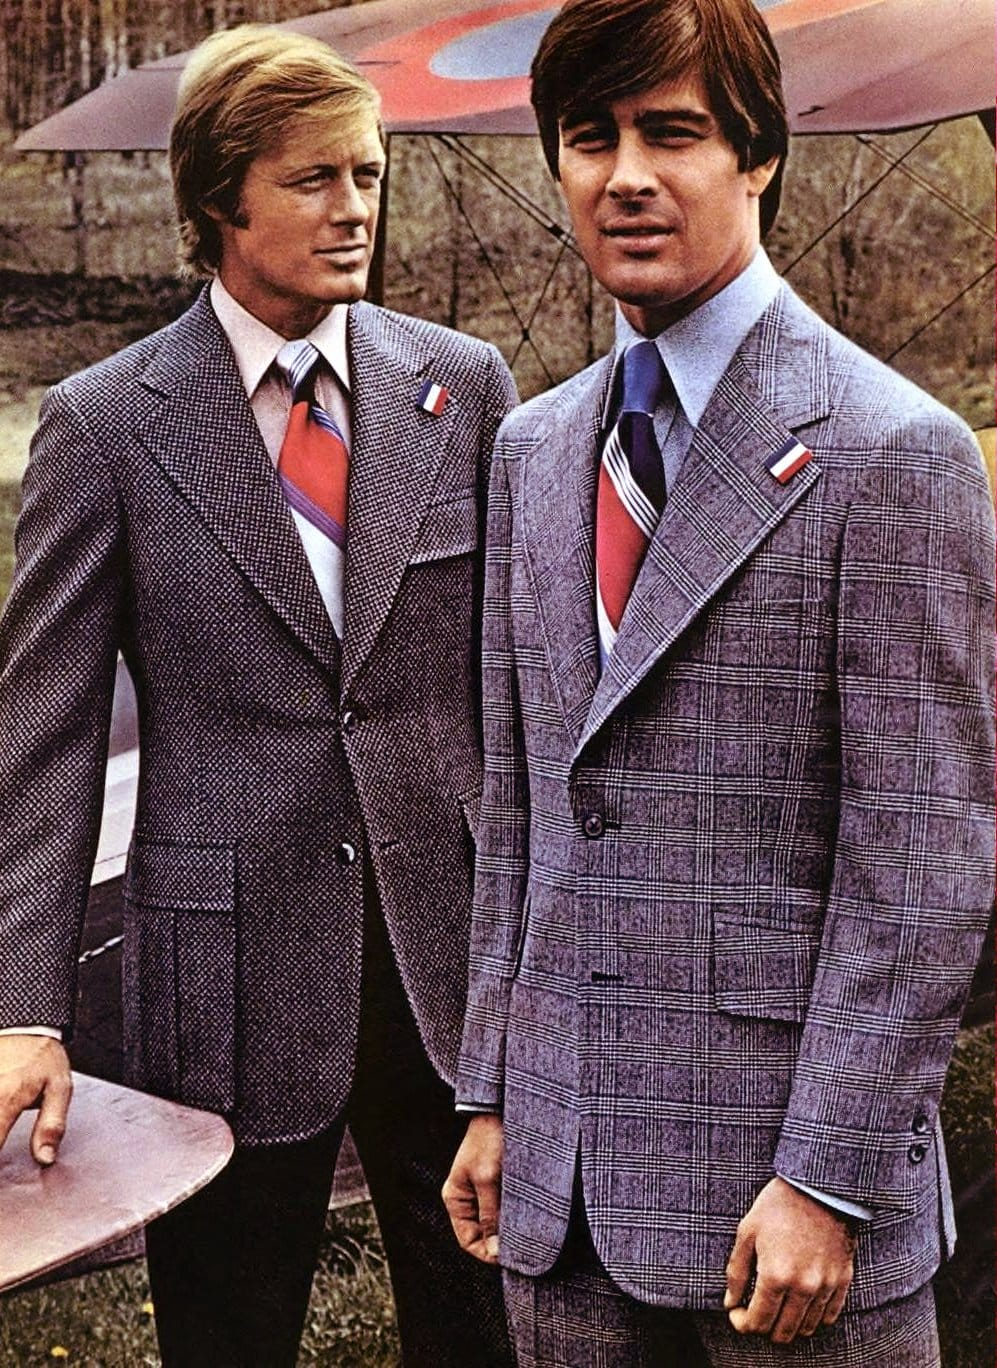 Stylish 1970s suits for men from 1972